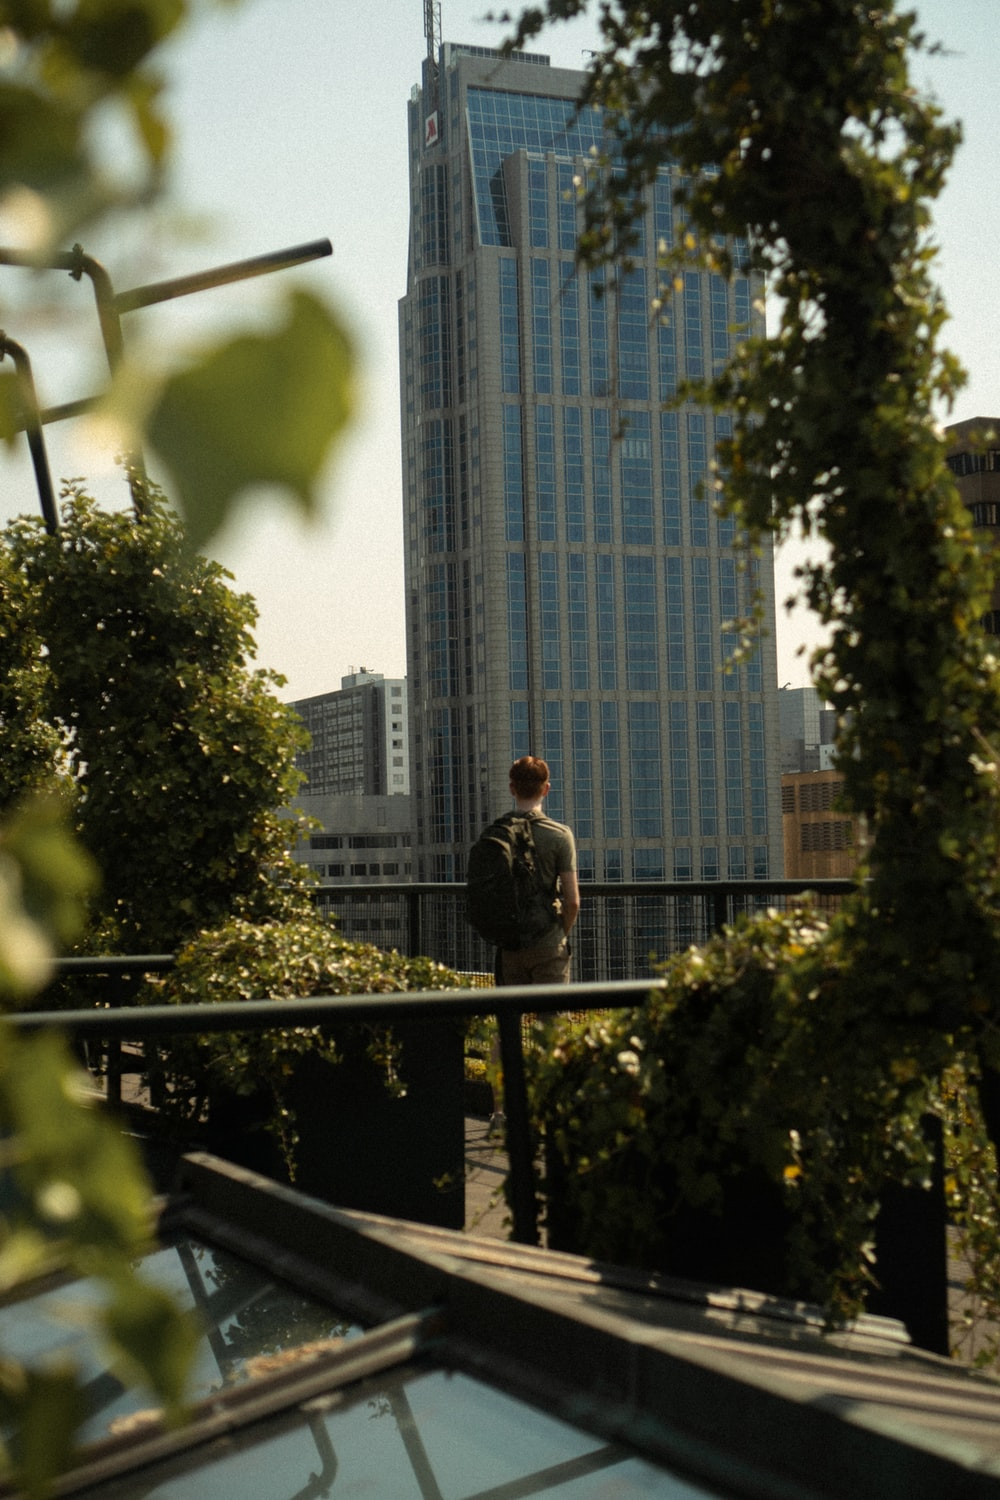 man in gray jacket standing on balcony during daytime